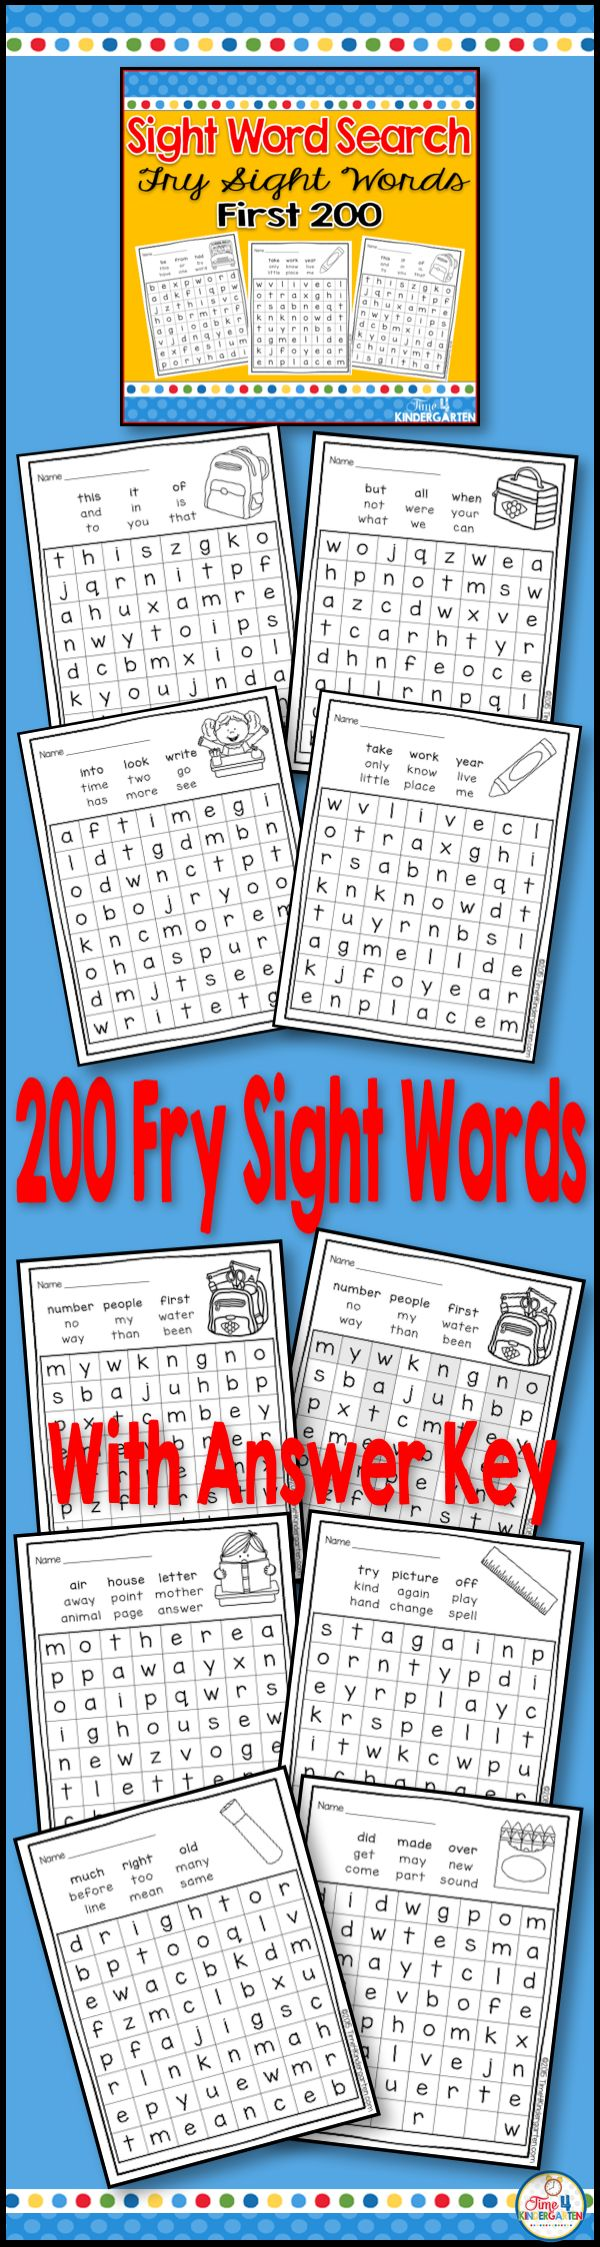 Sight Word Search for kindergarten.  Help students review their sight words with this fun sight word set that contains 110 FRY sight words.